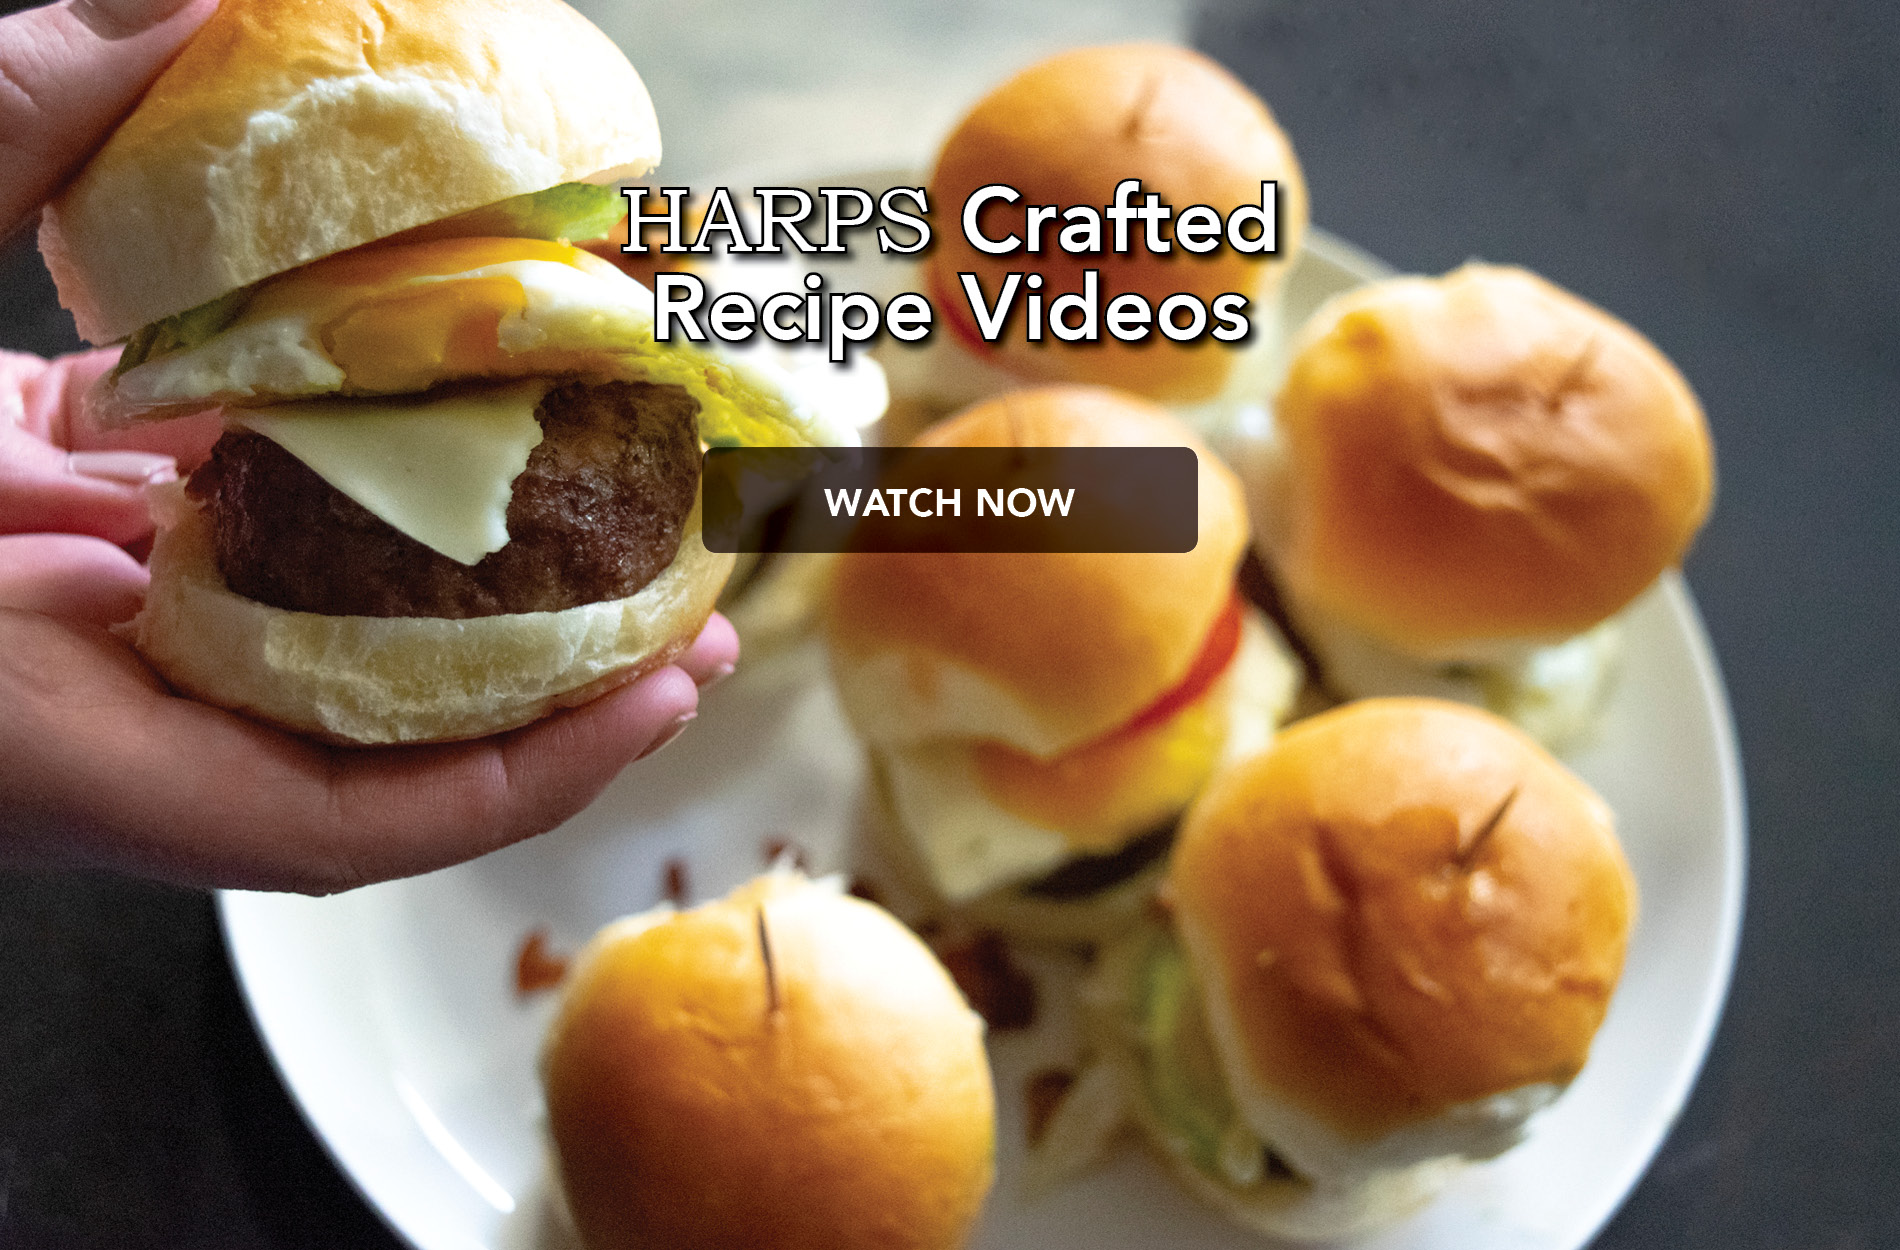 Harps Crafted Recipe Videos